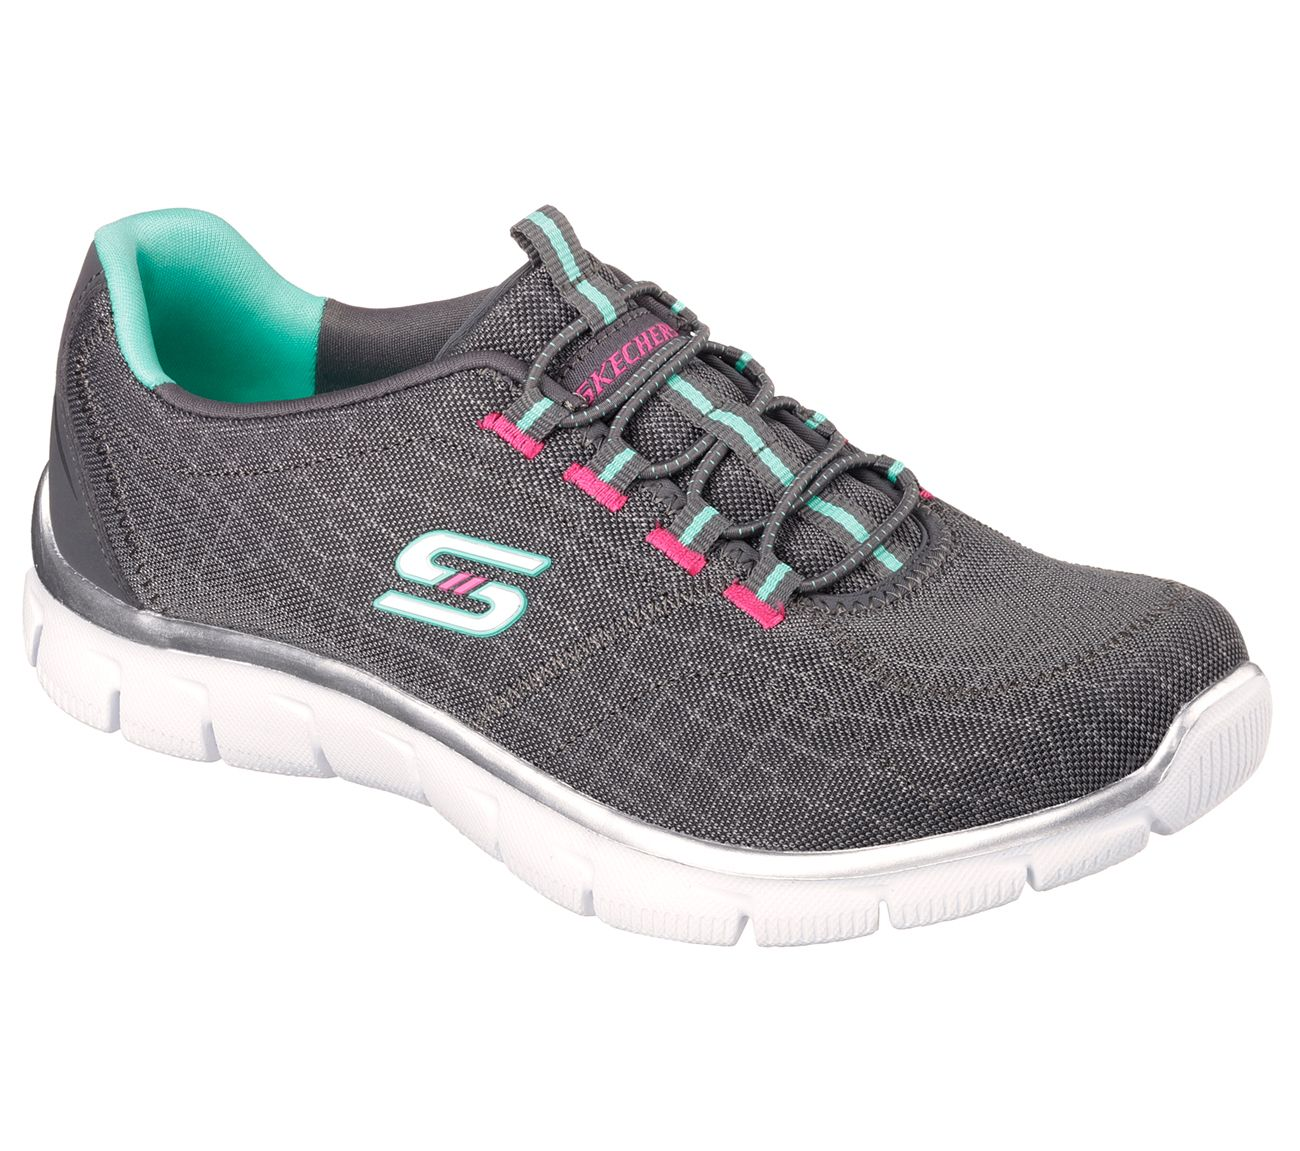 Shop for SKECHERS Shoes, Sneakers, Sport, Performance, Sandals and Boots -  SKECHERS USA Official Site